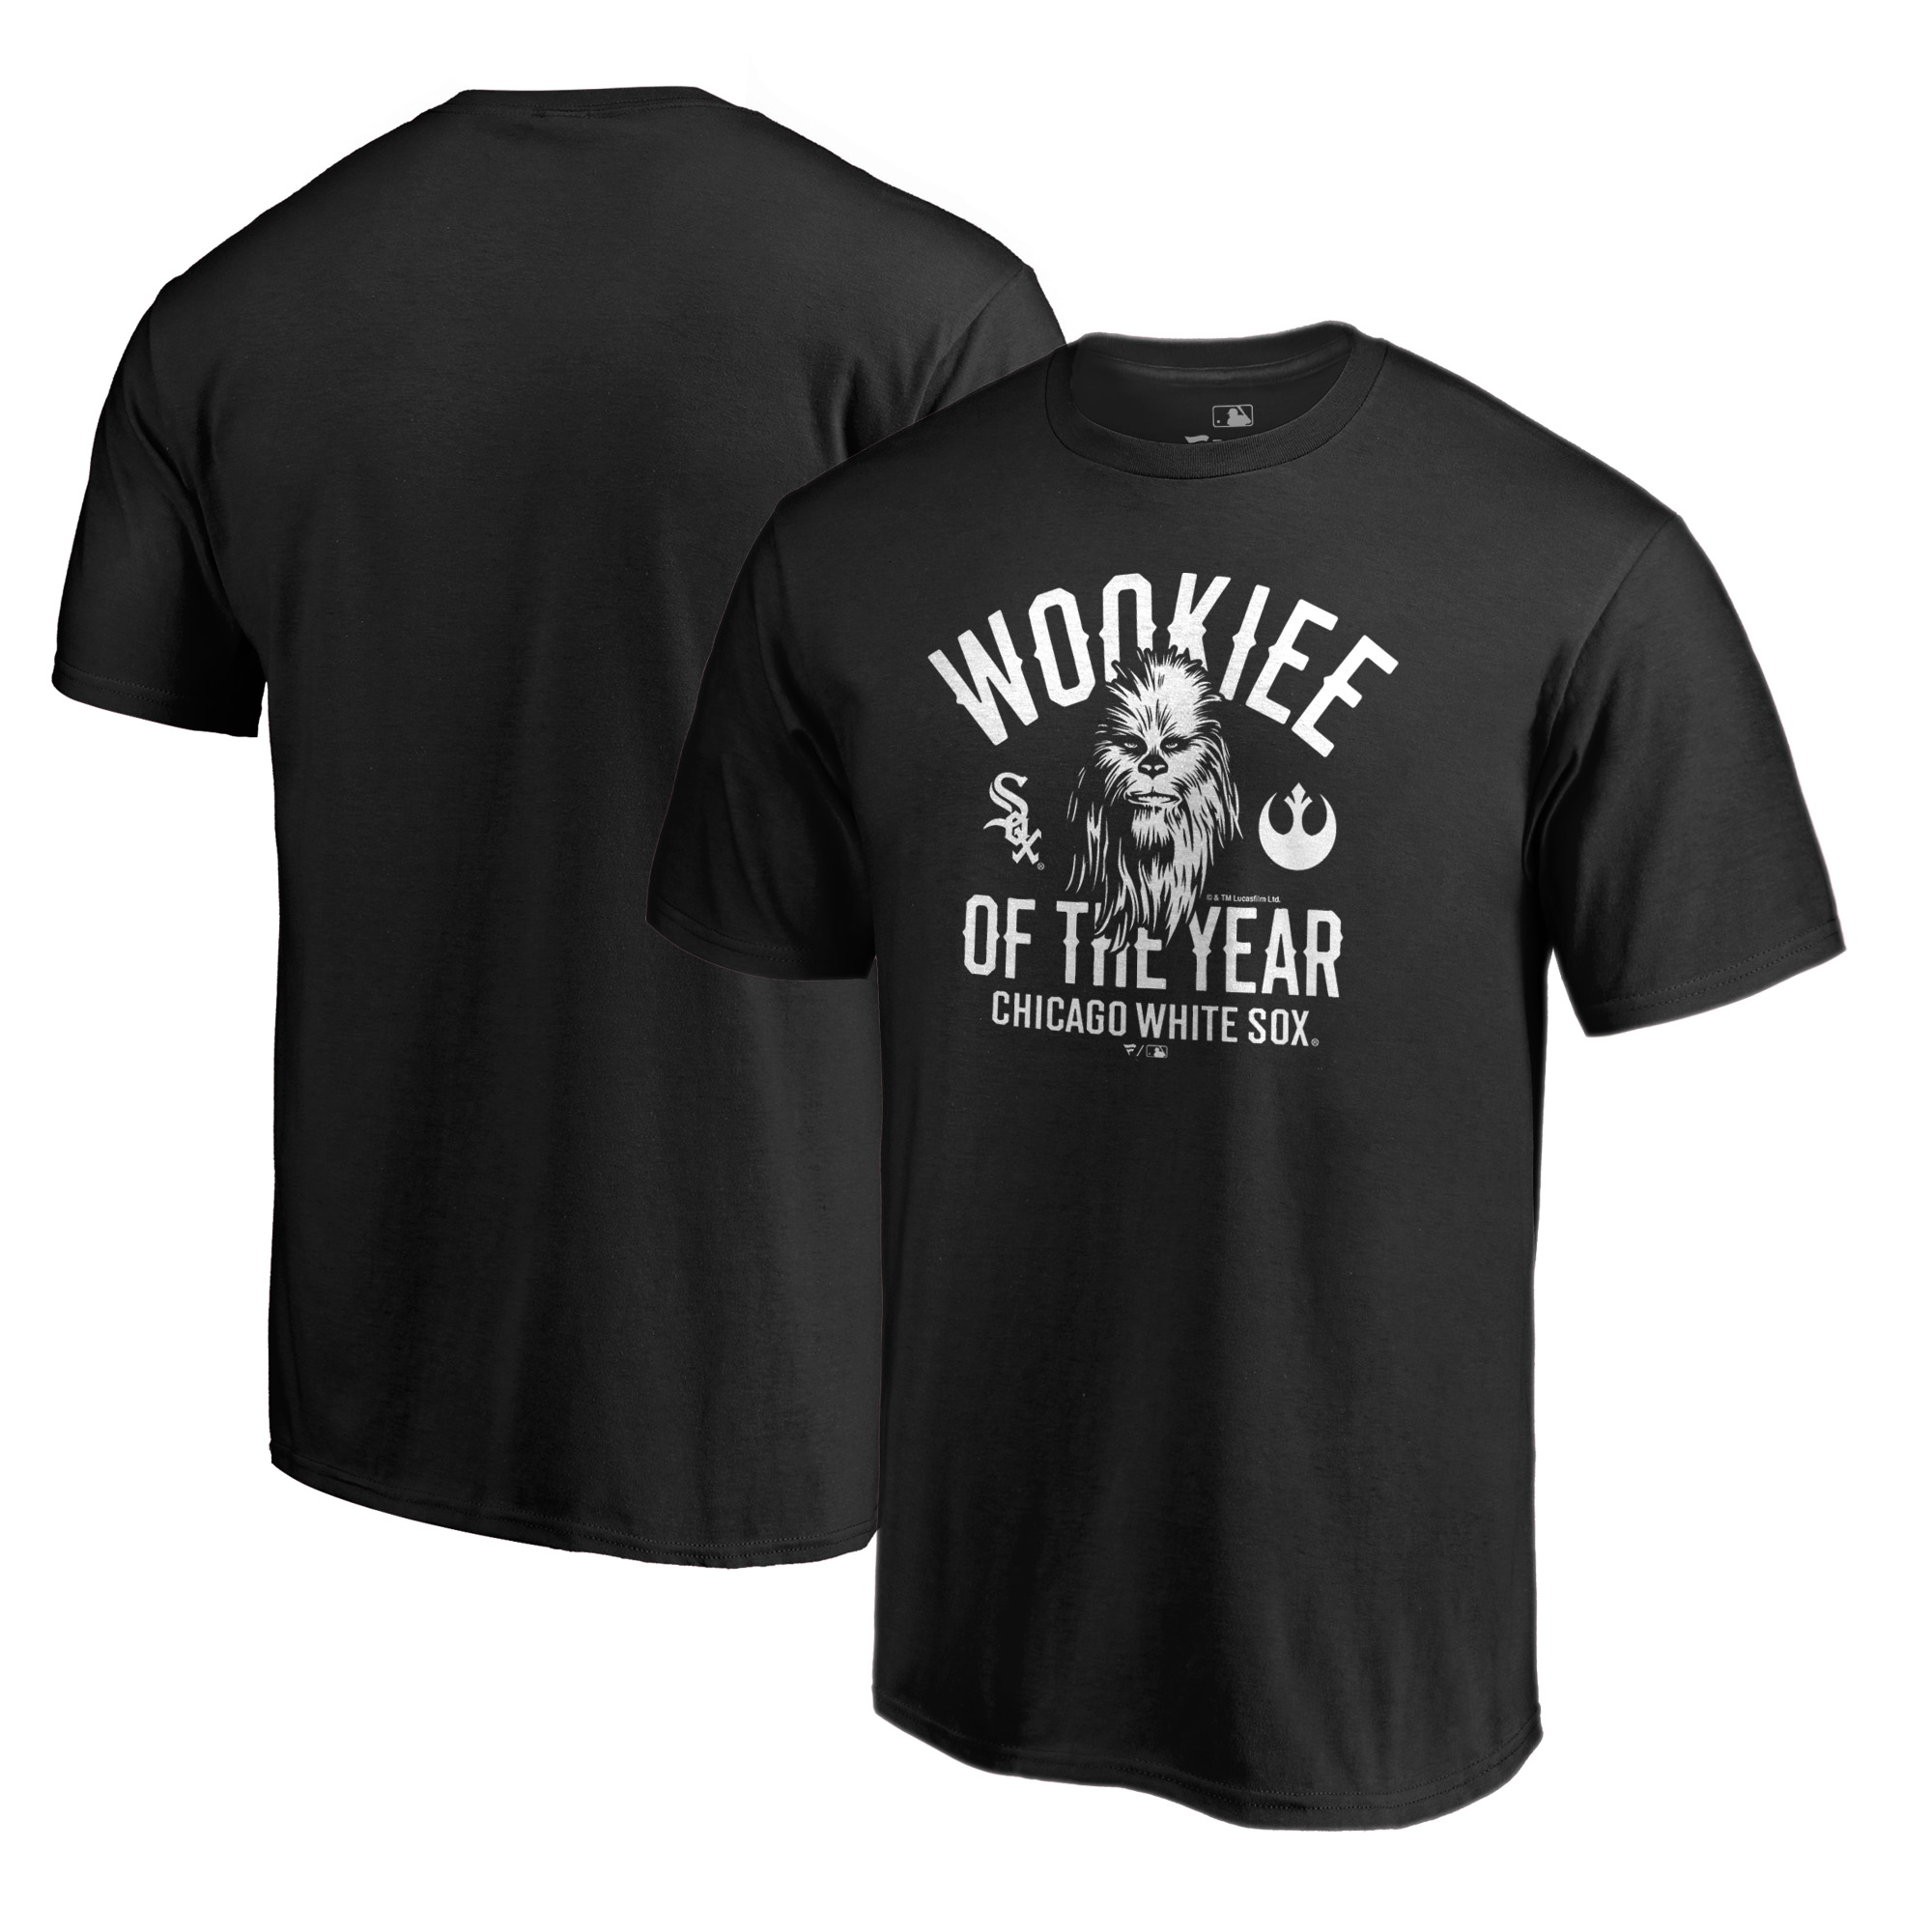 Chicago White Sox Fanatics Branded Star Wars Wookiee Of The Year T-Shirt - Black